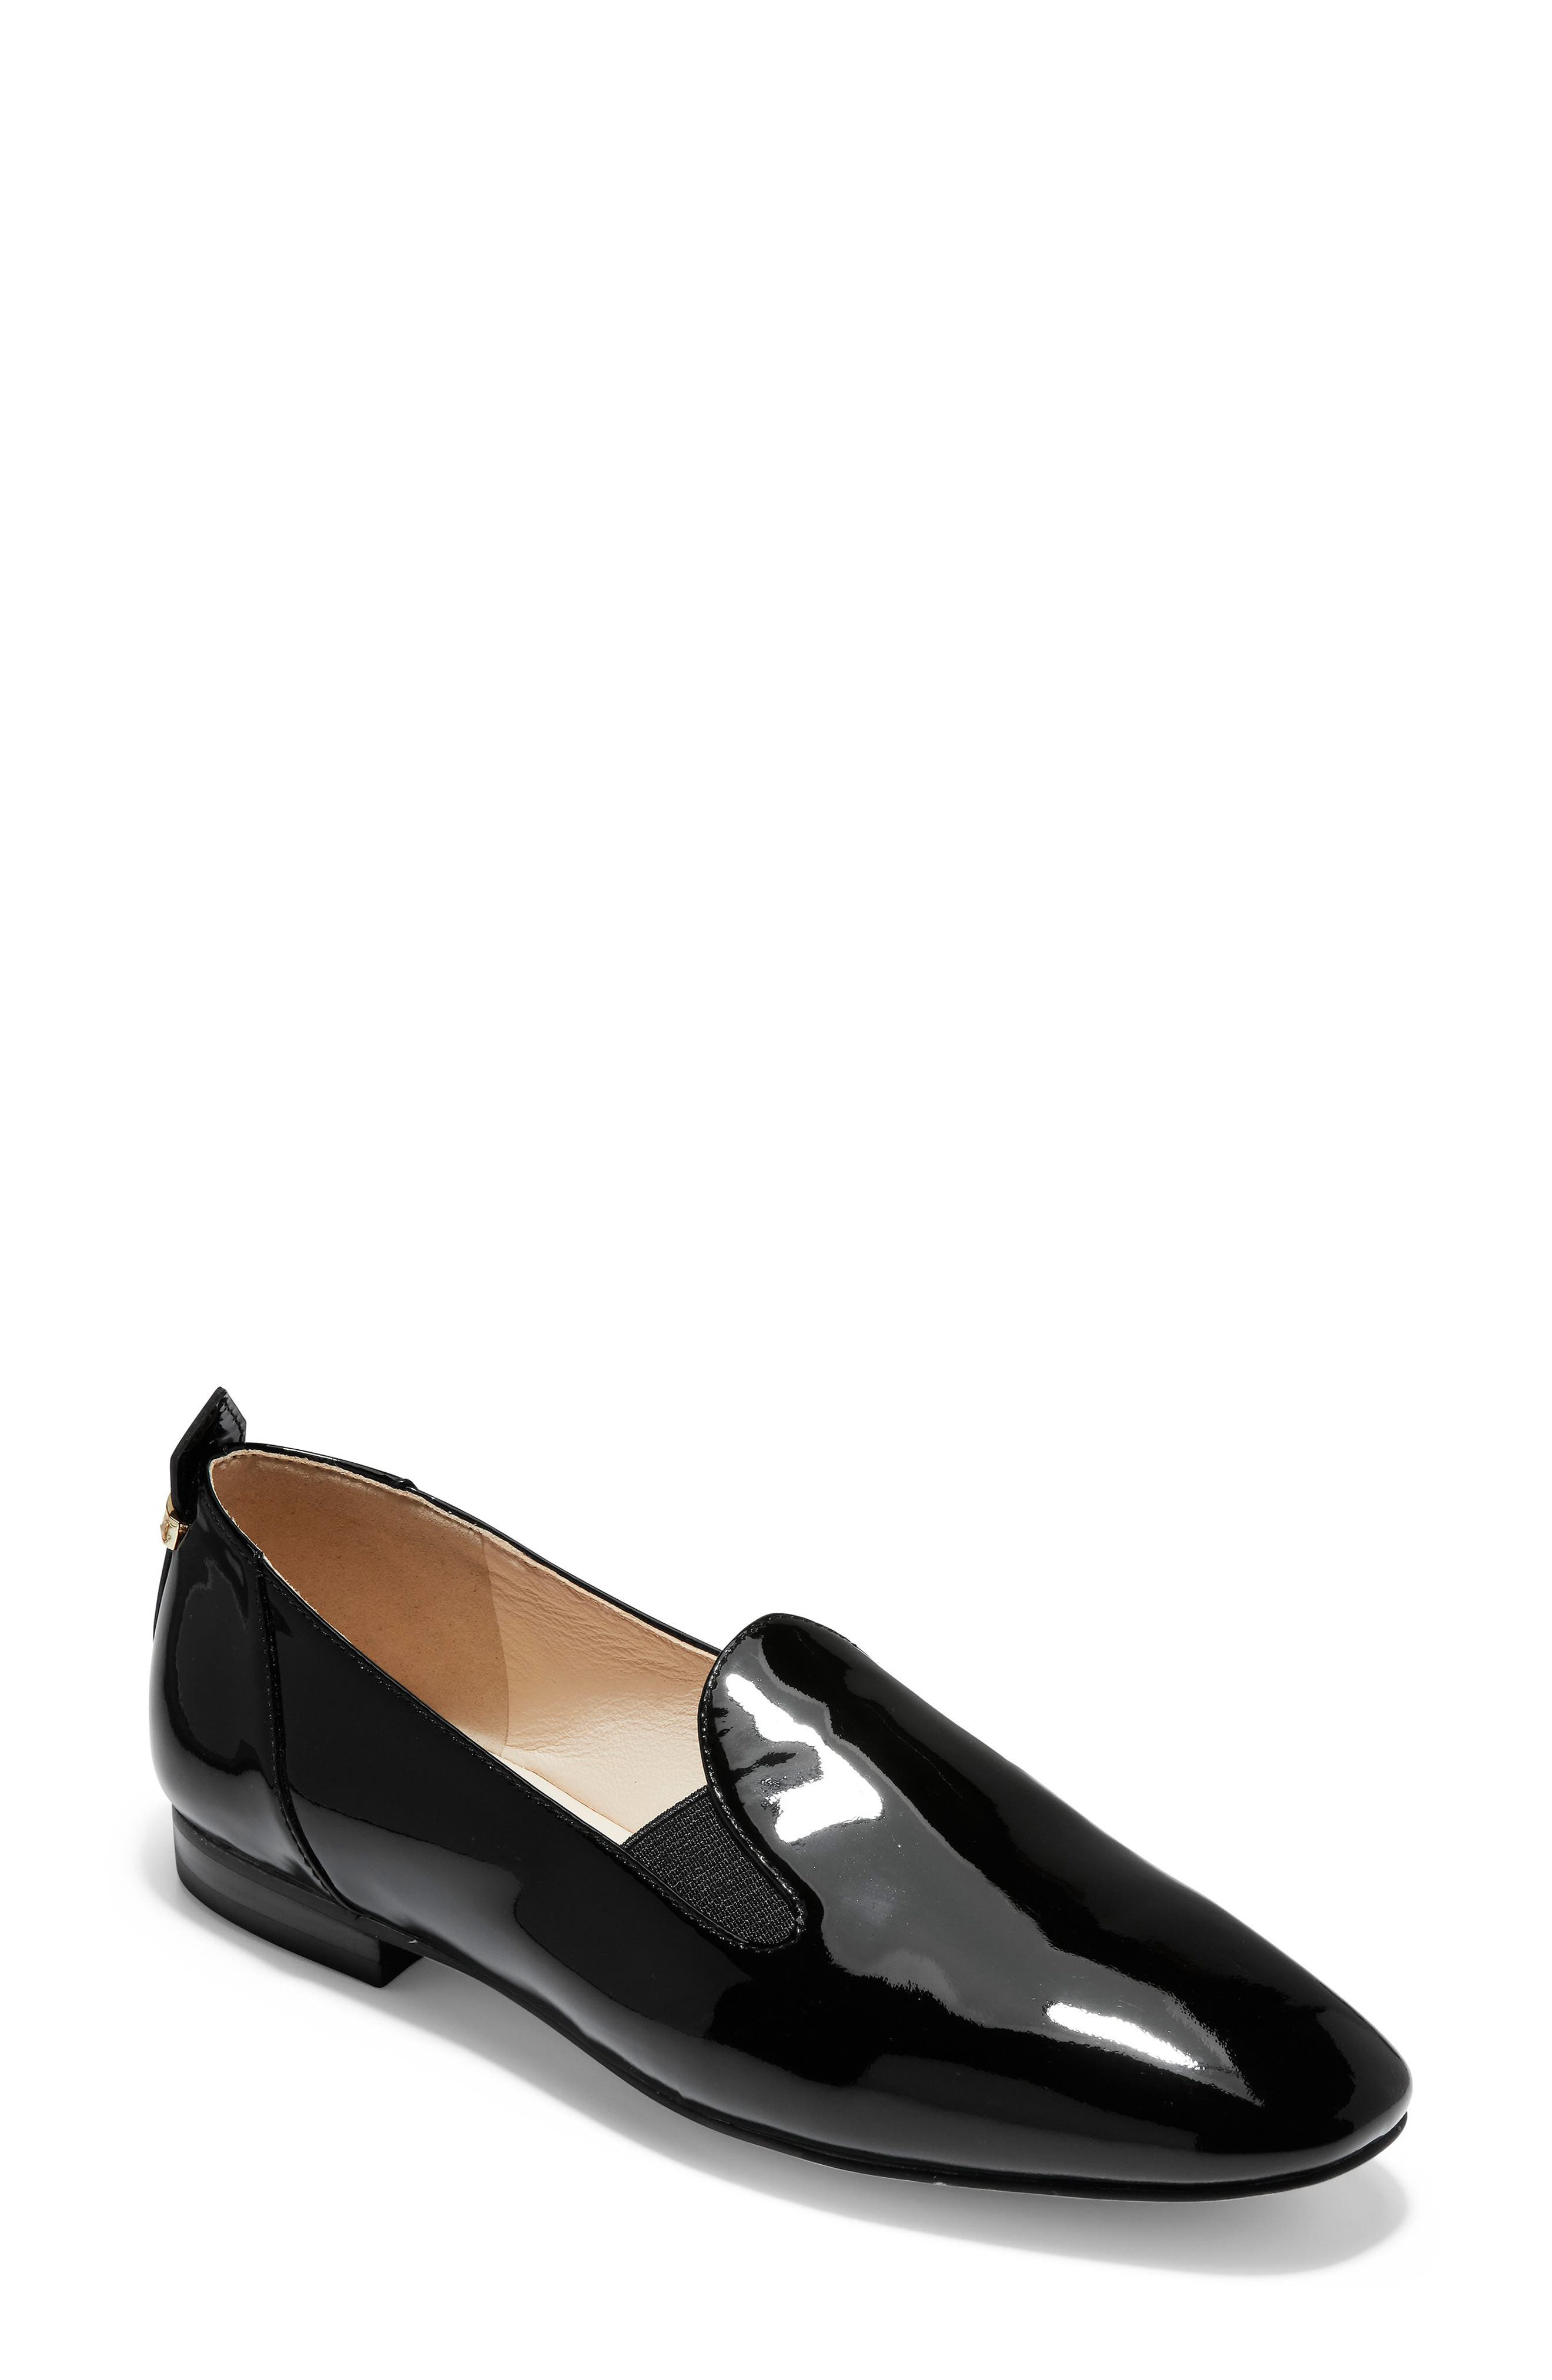 Cole Haan Portia Loafer, Black